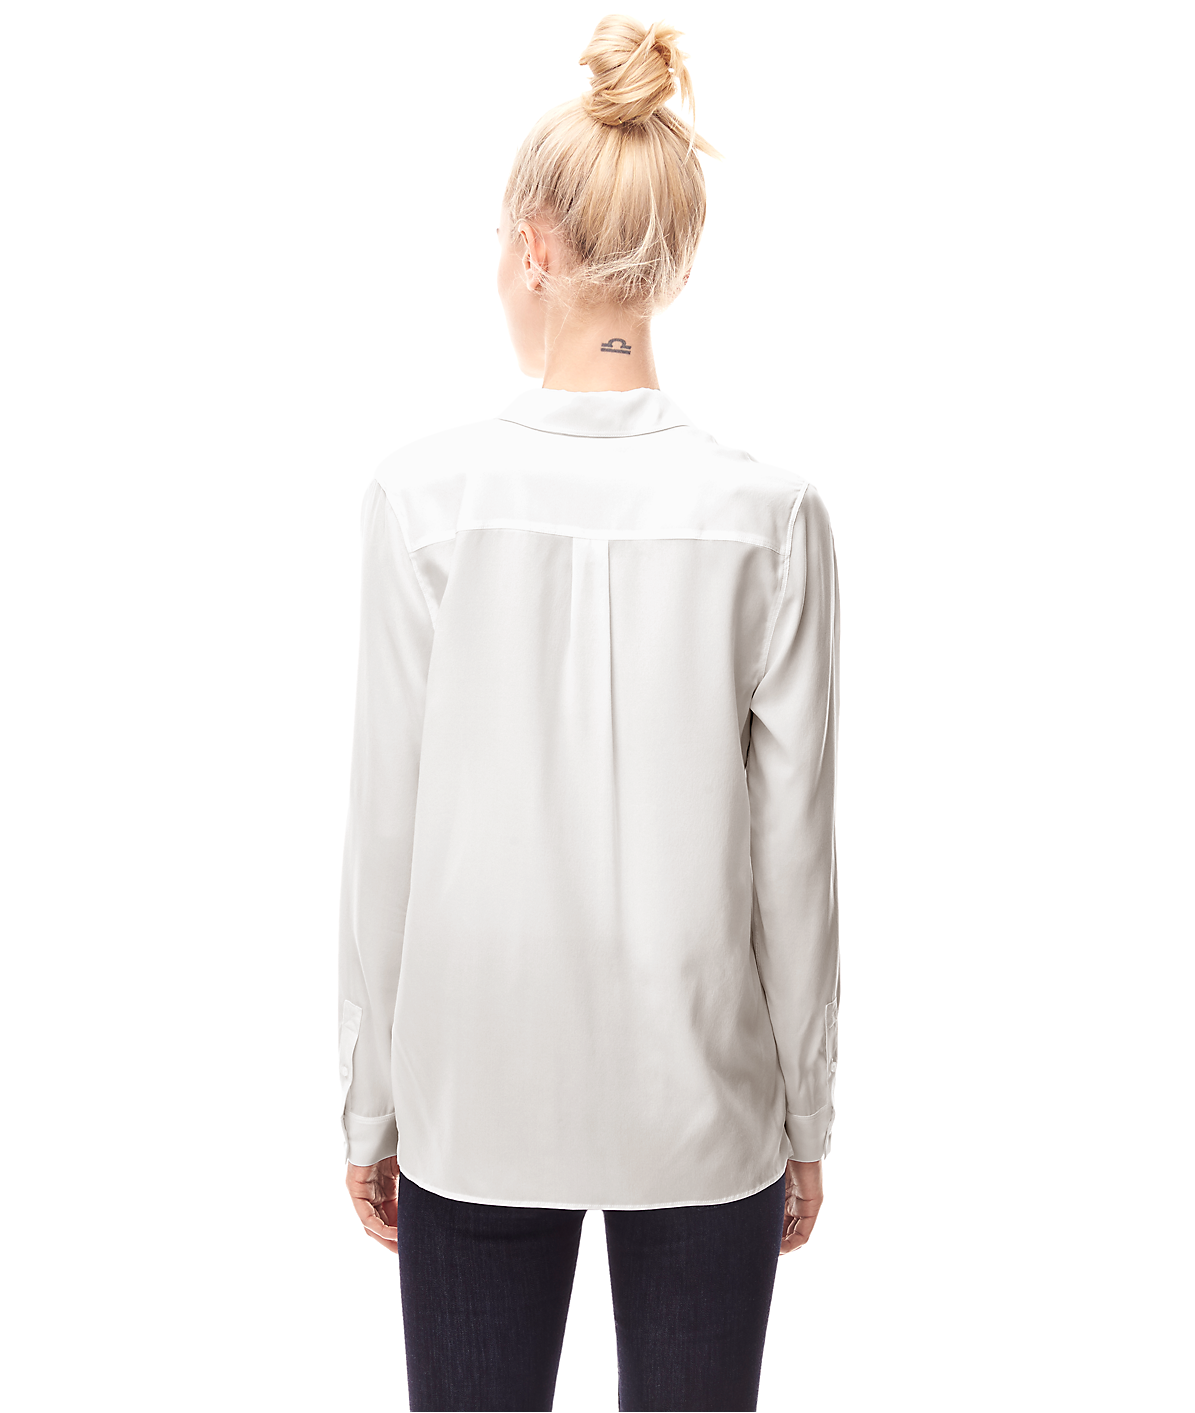 Silk blouse H1162101 from liebeskind